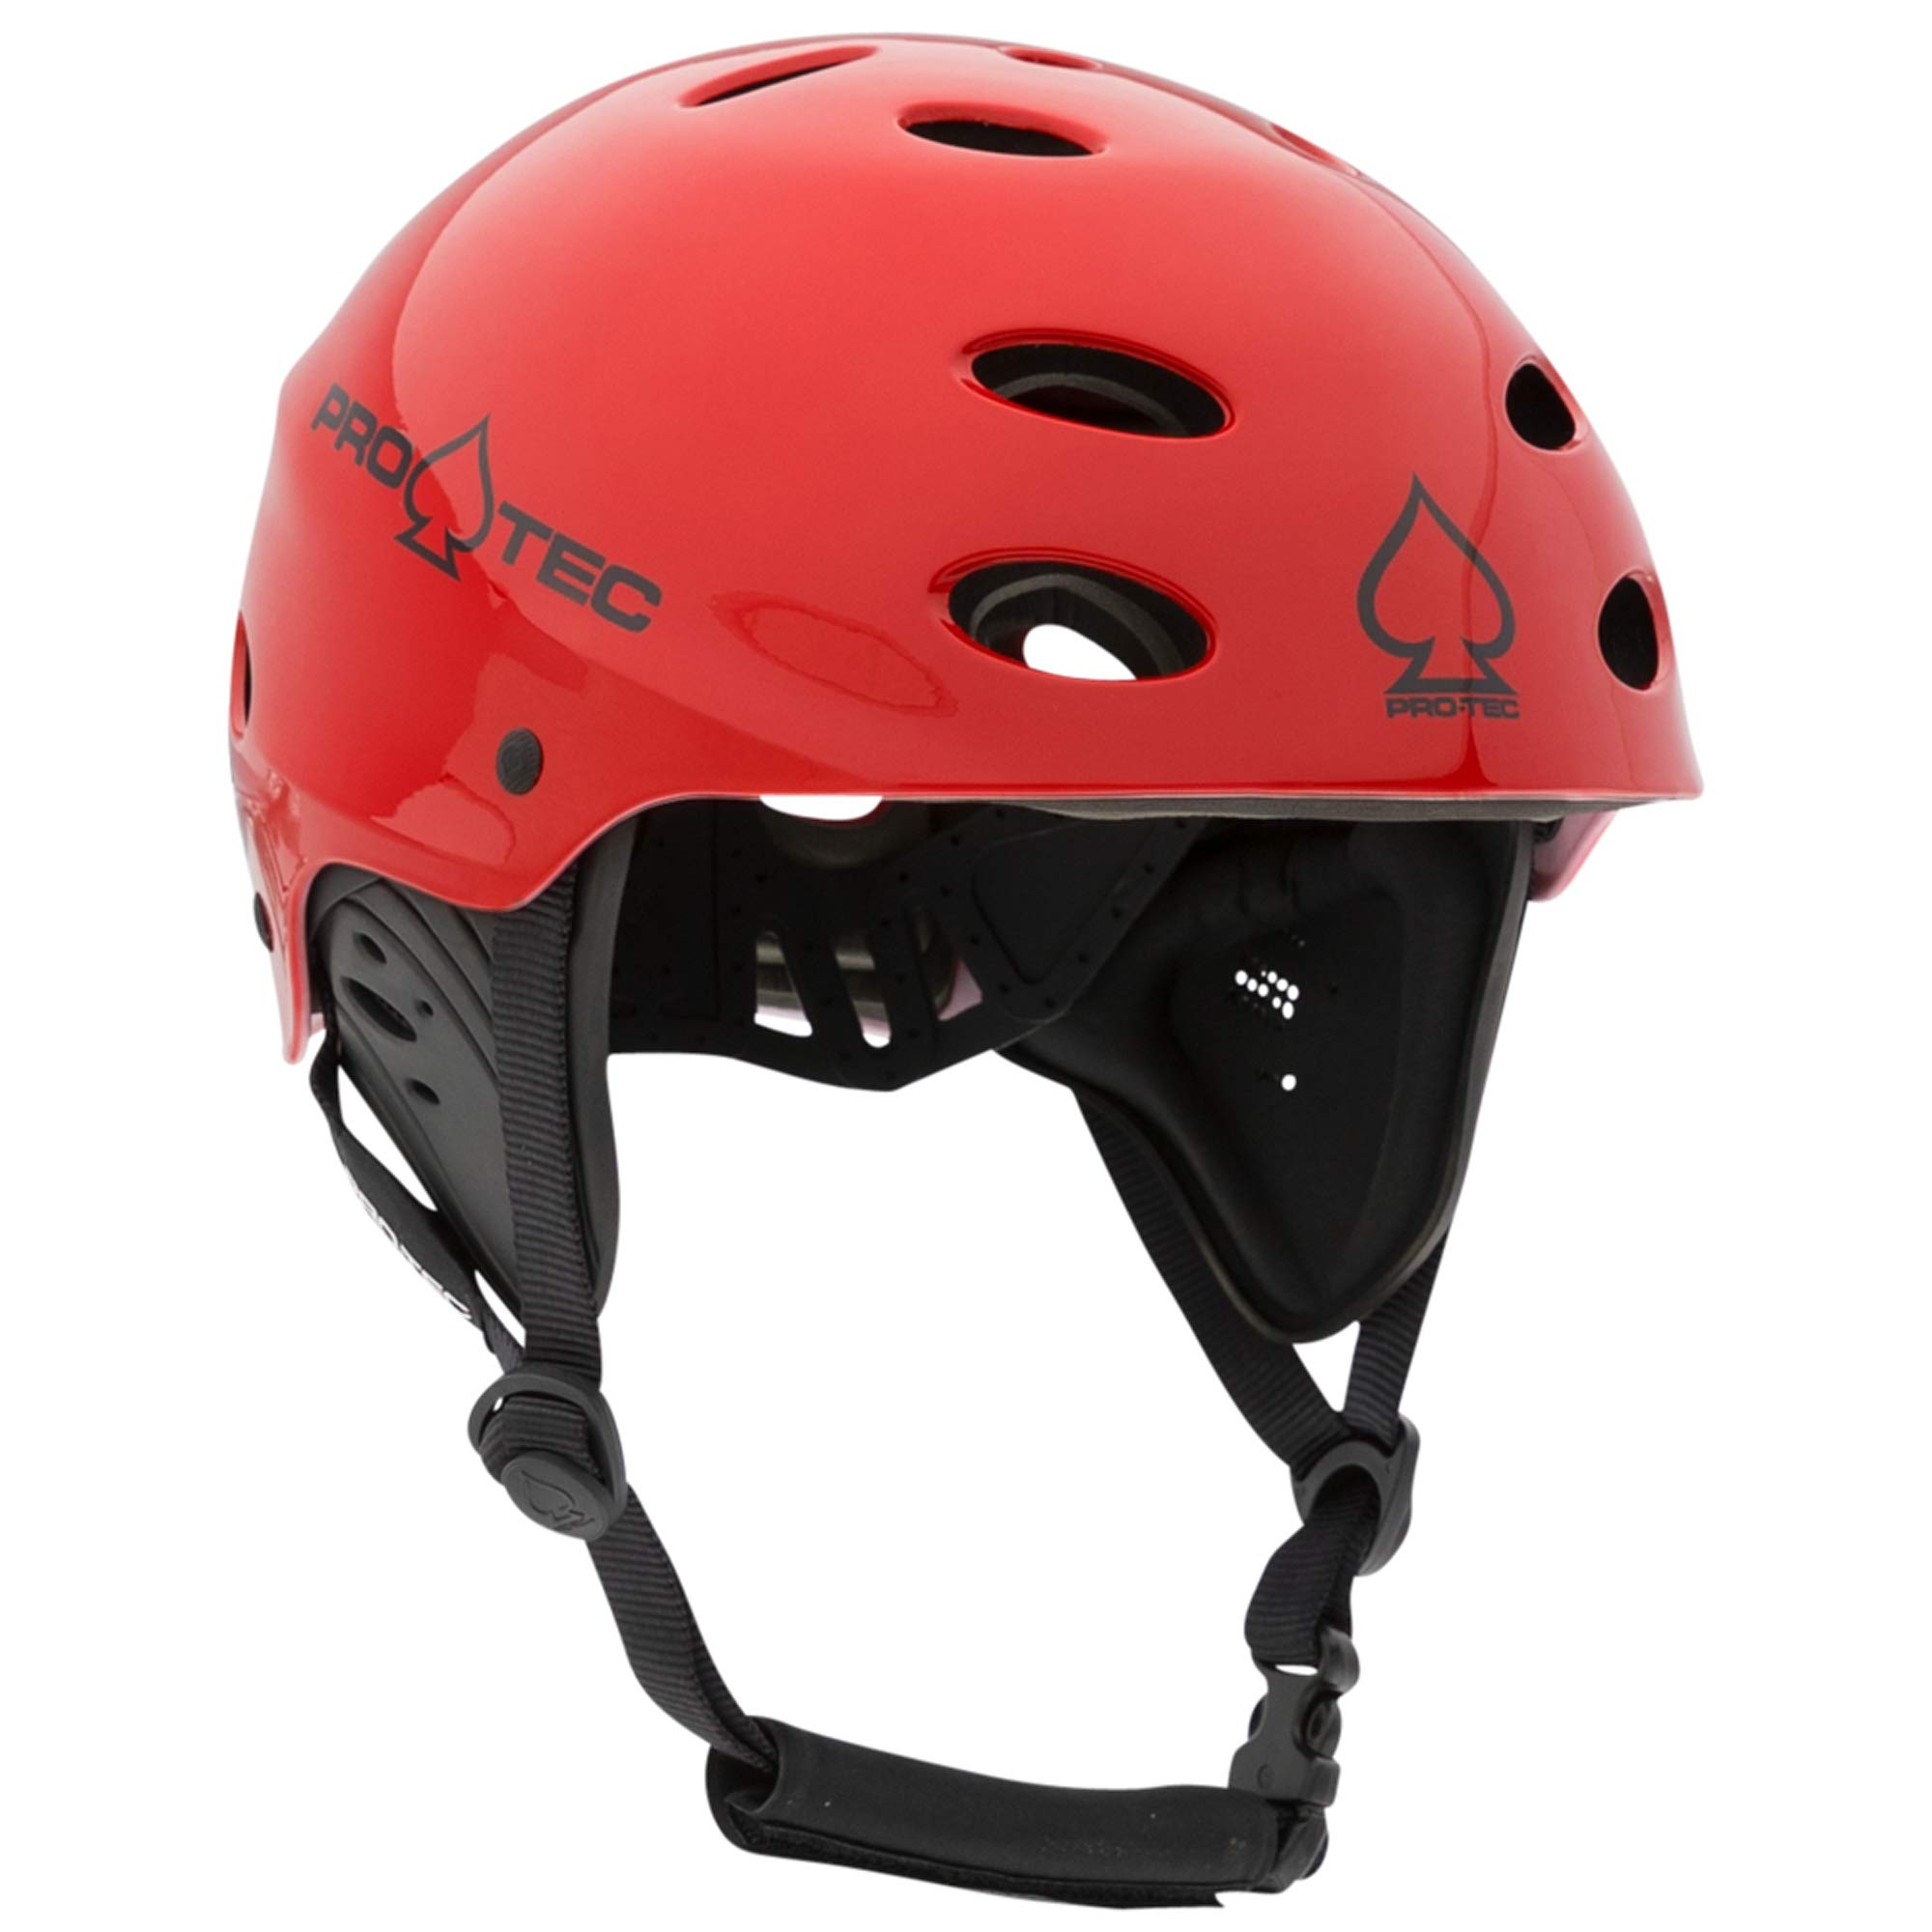 Pro-Tec - Ace Wake Helmet, Gloss Red, XS by Pro-Tec